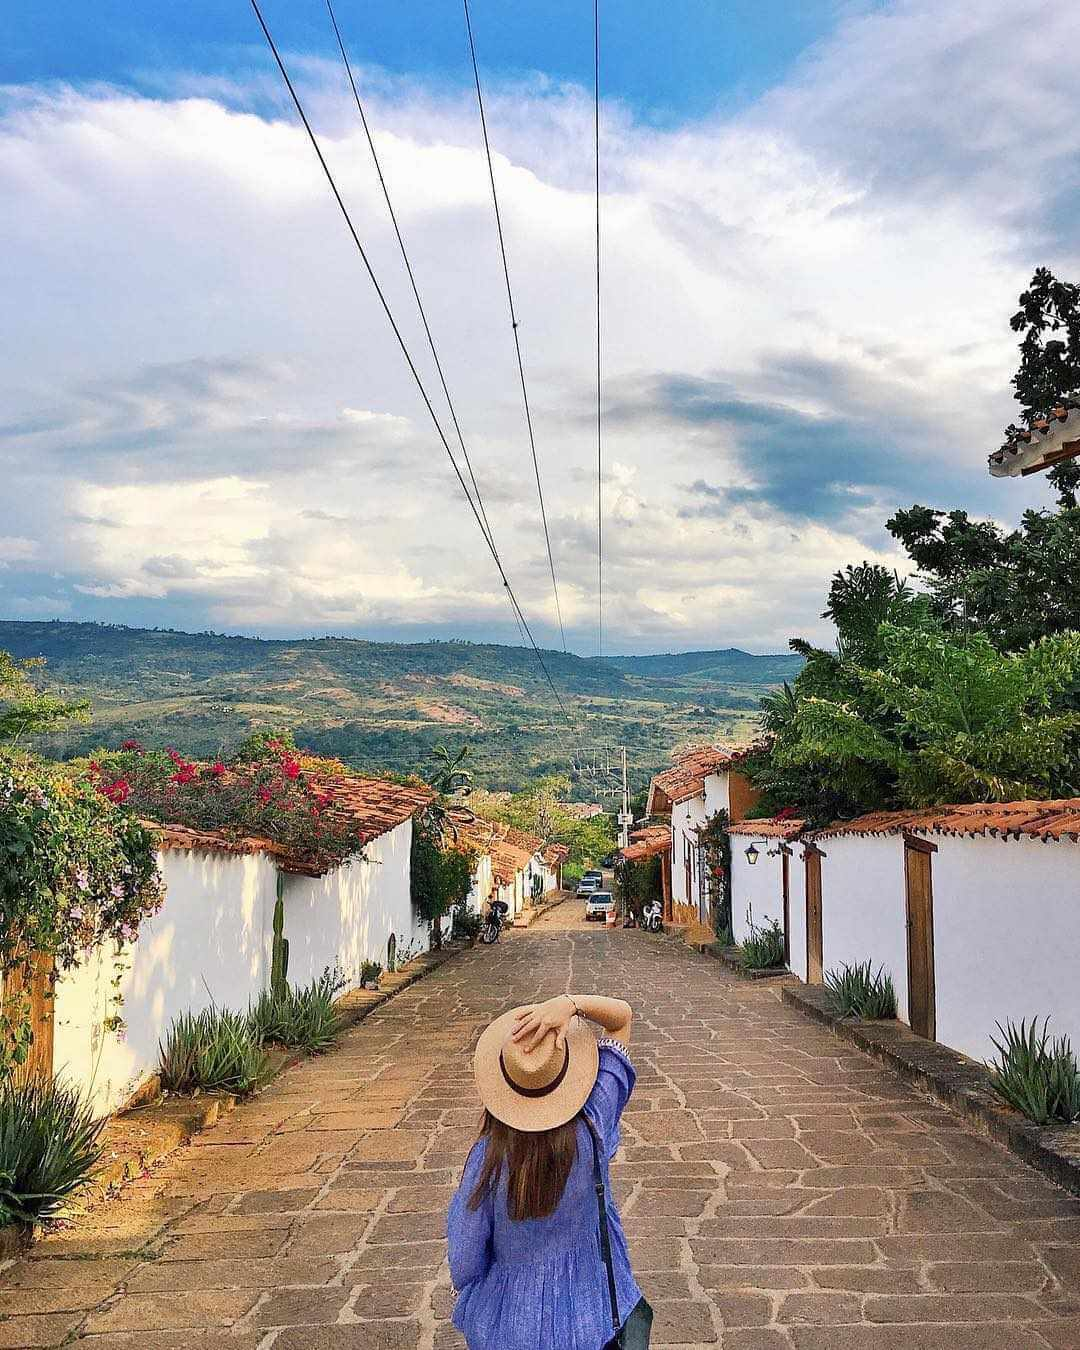 The most beautiful town in Colombia